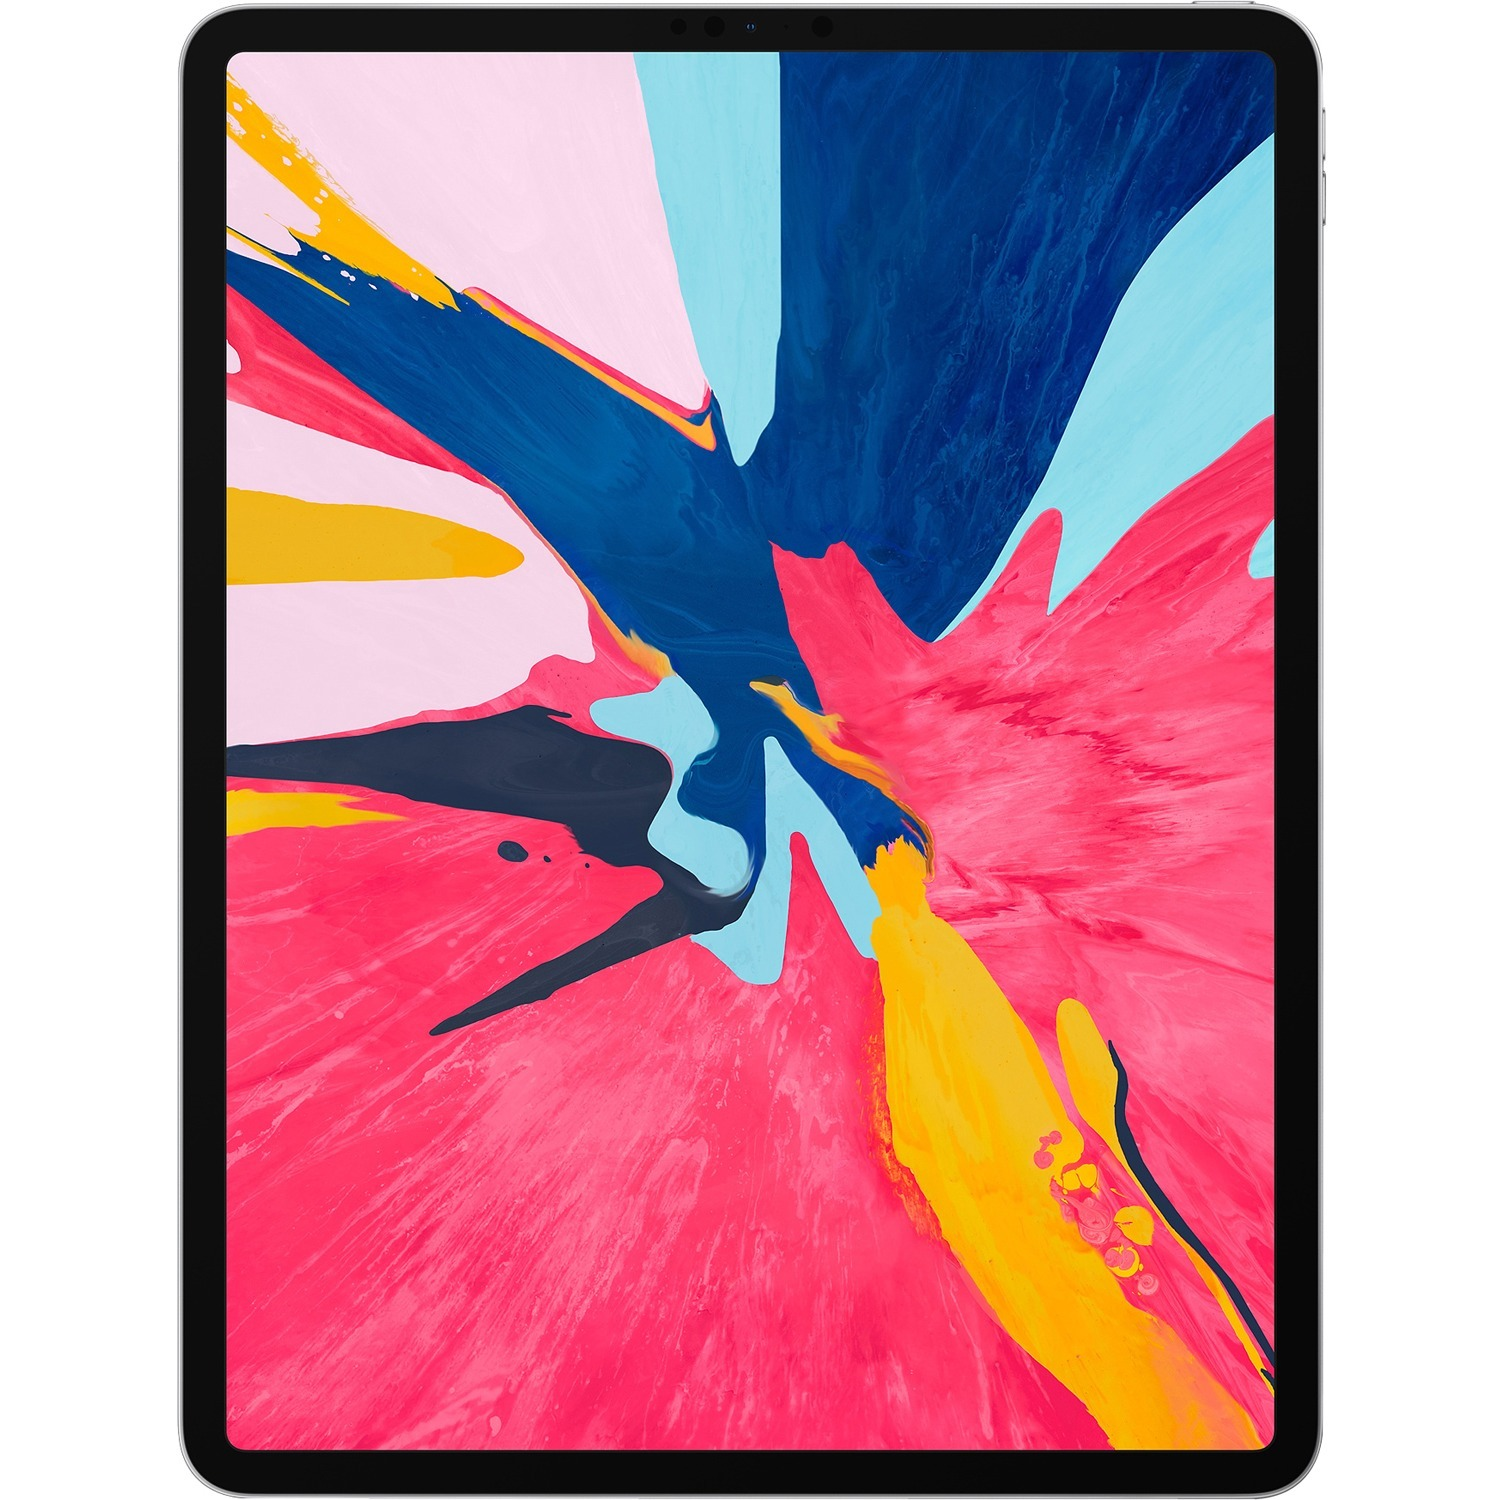 Apple iPad Pro 3rd Generation Tablet - 32.8 cm 12.9And#34; - 256 GB Storage - iOS 12 - 4G - Silver - Apple A12X Bionic SoC - 7 Megapixel Front Camera - 12 Megapixel Re